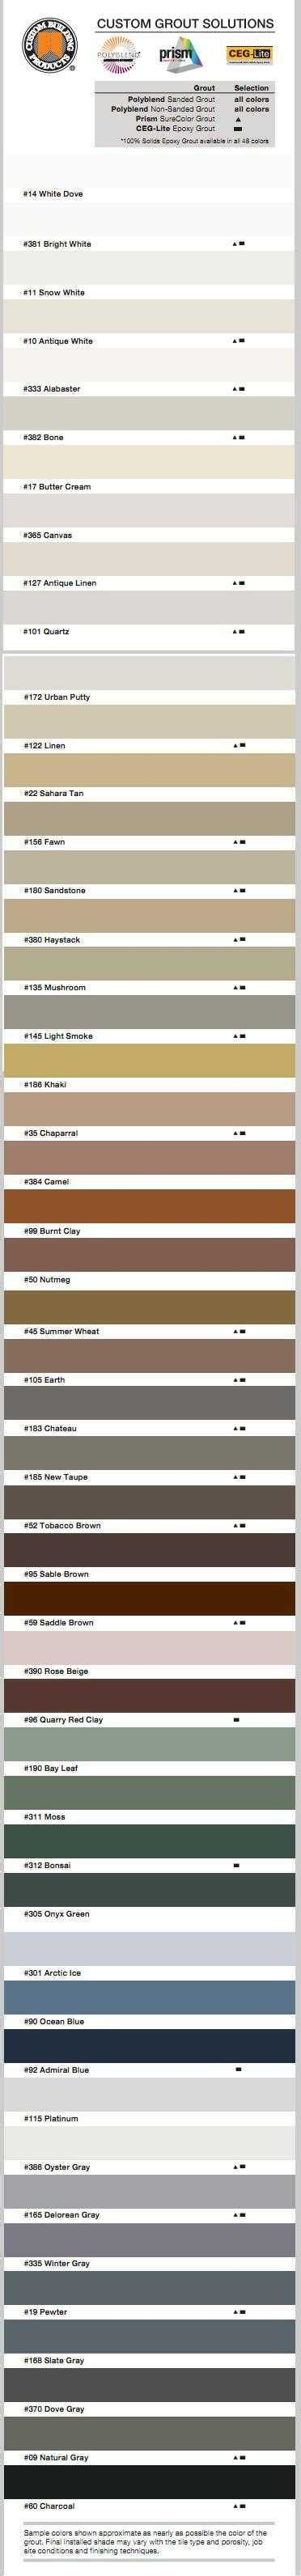 what color grout should i choose for my tile the home depot community